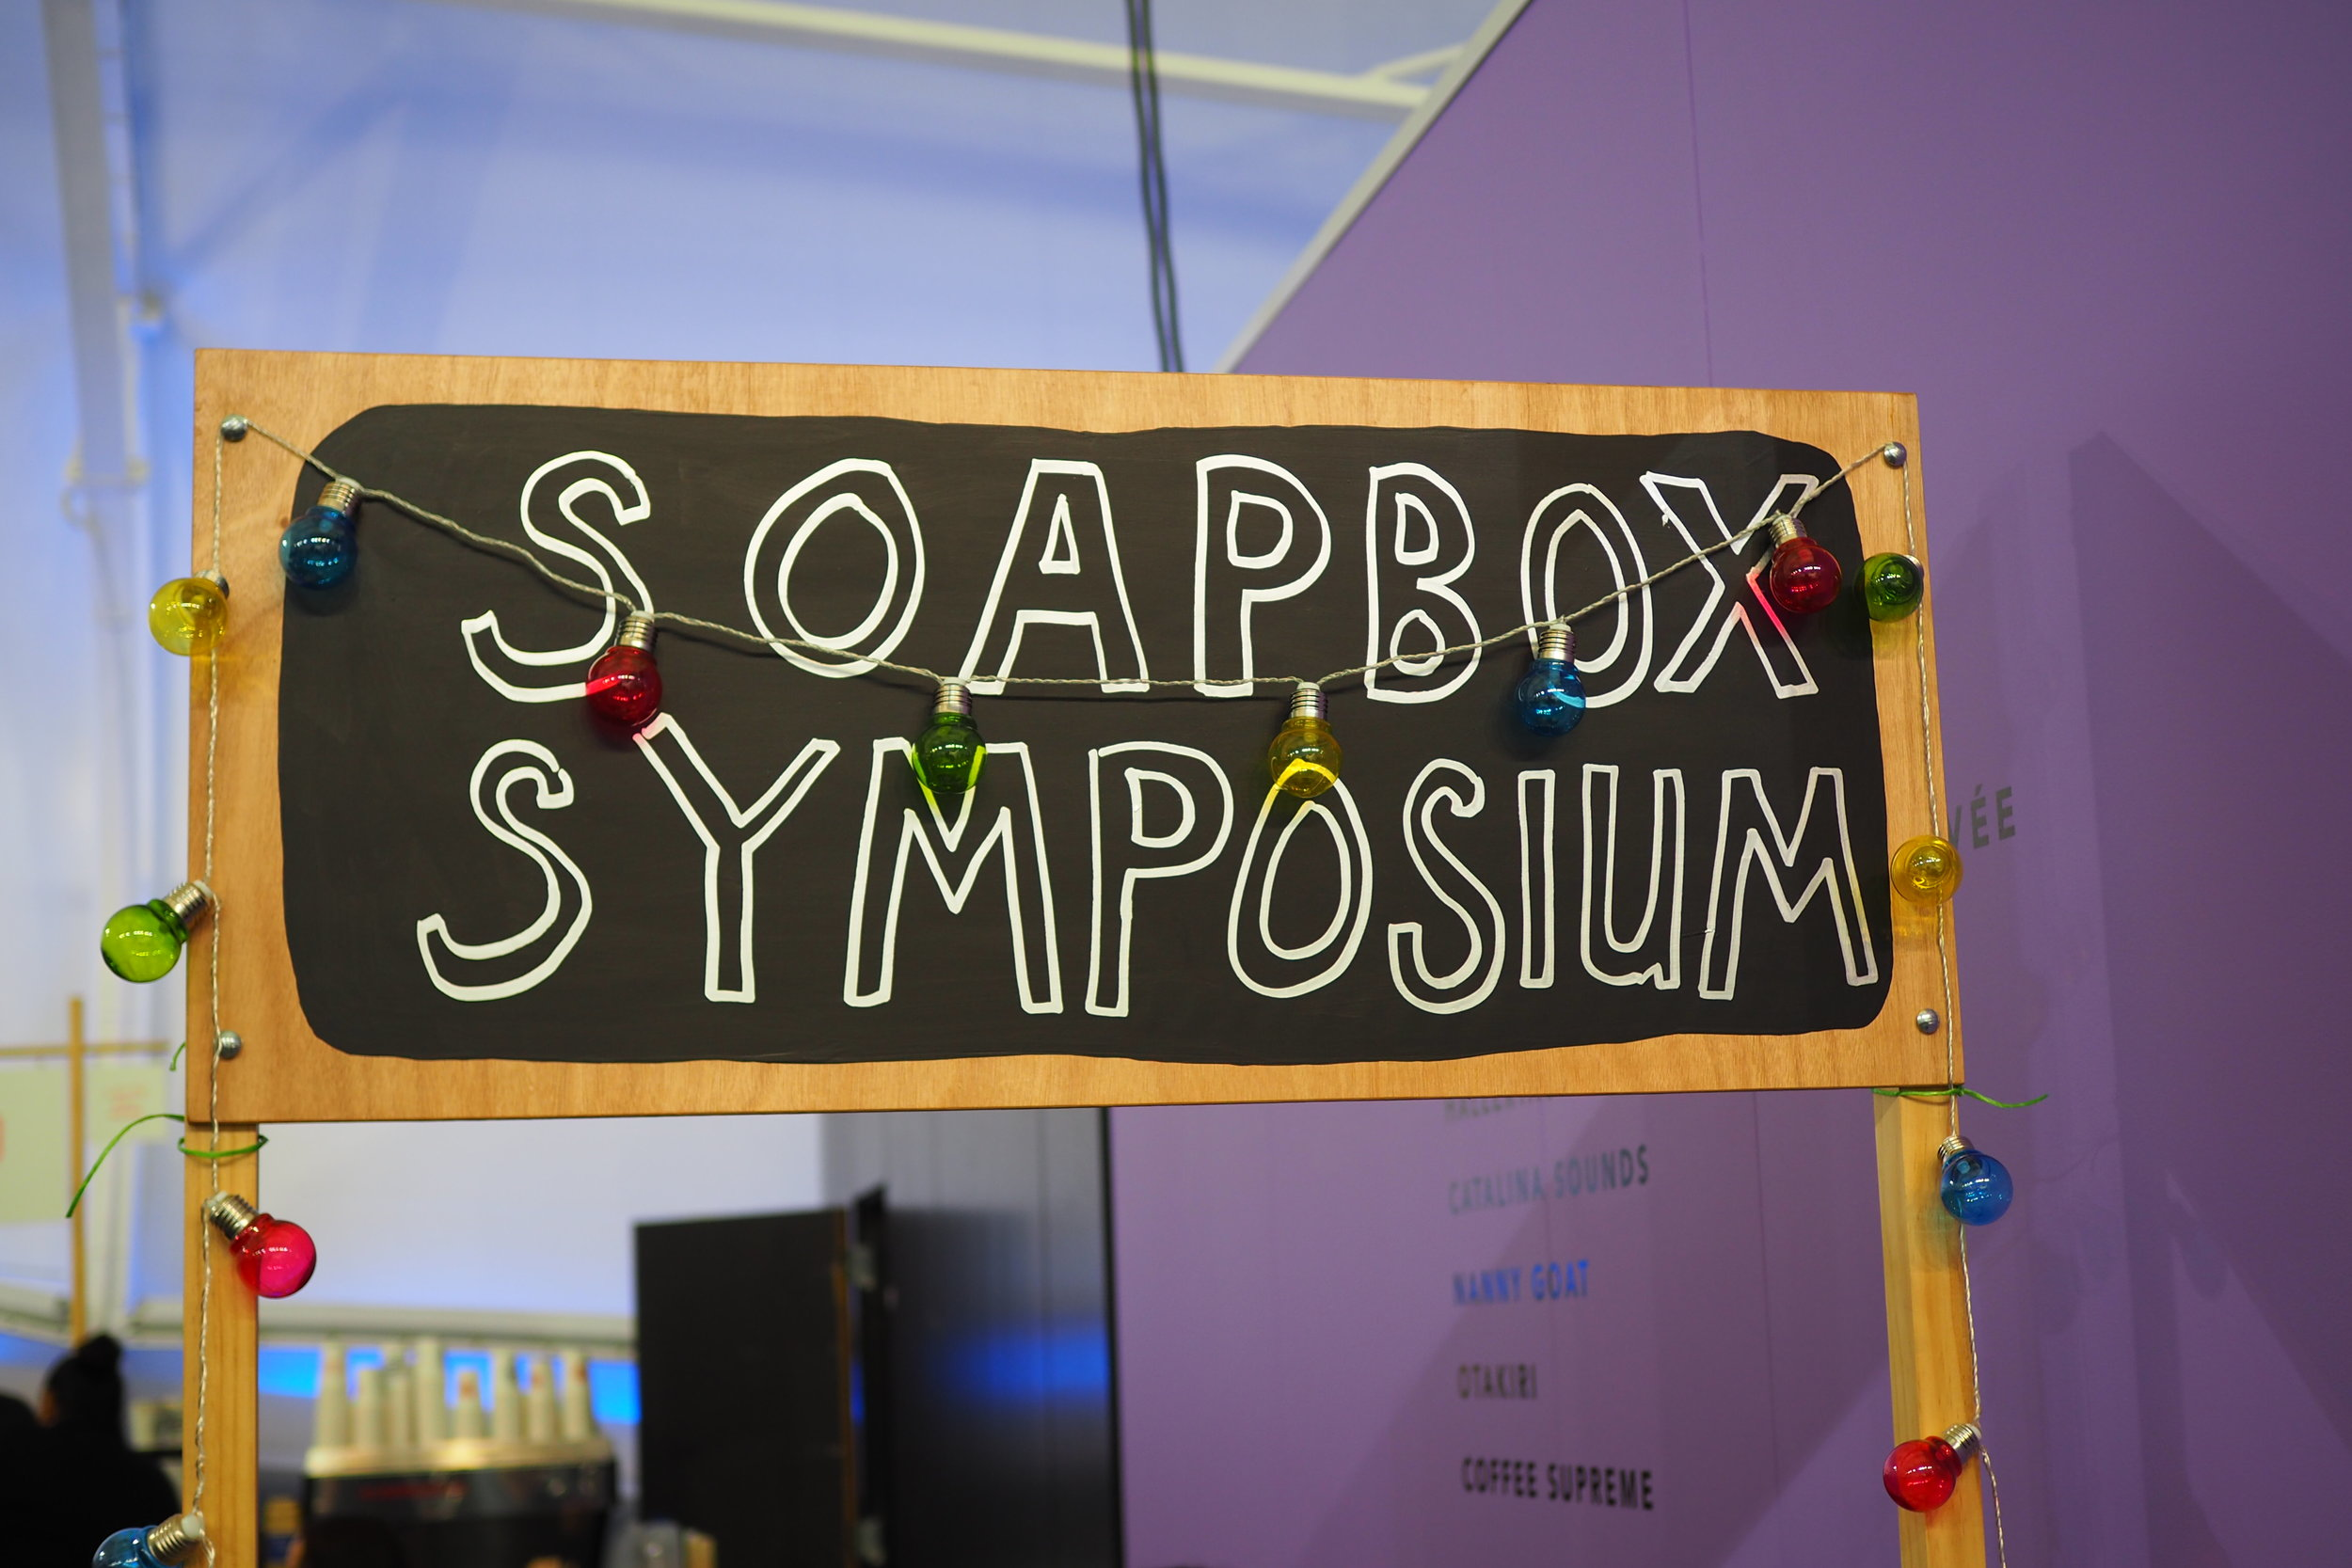 The Soapbox Symposium, speak to an artist about a topic of your choice.